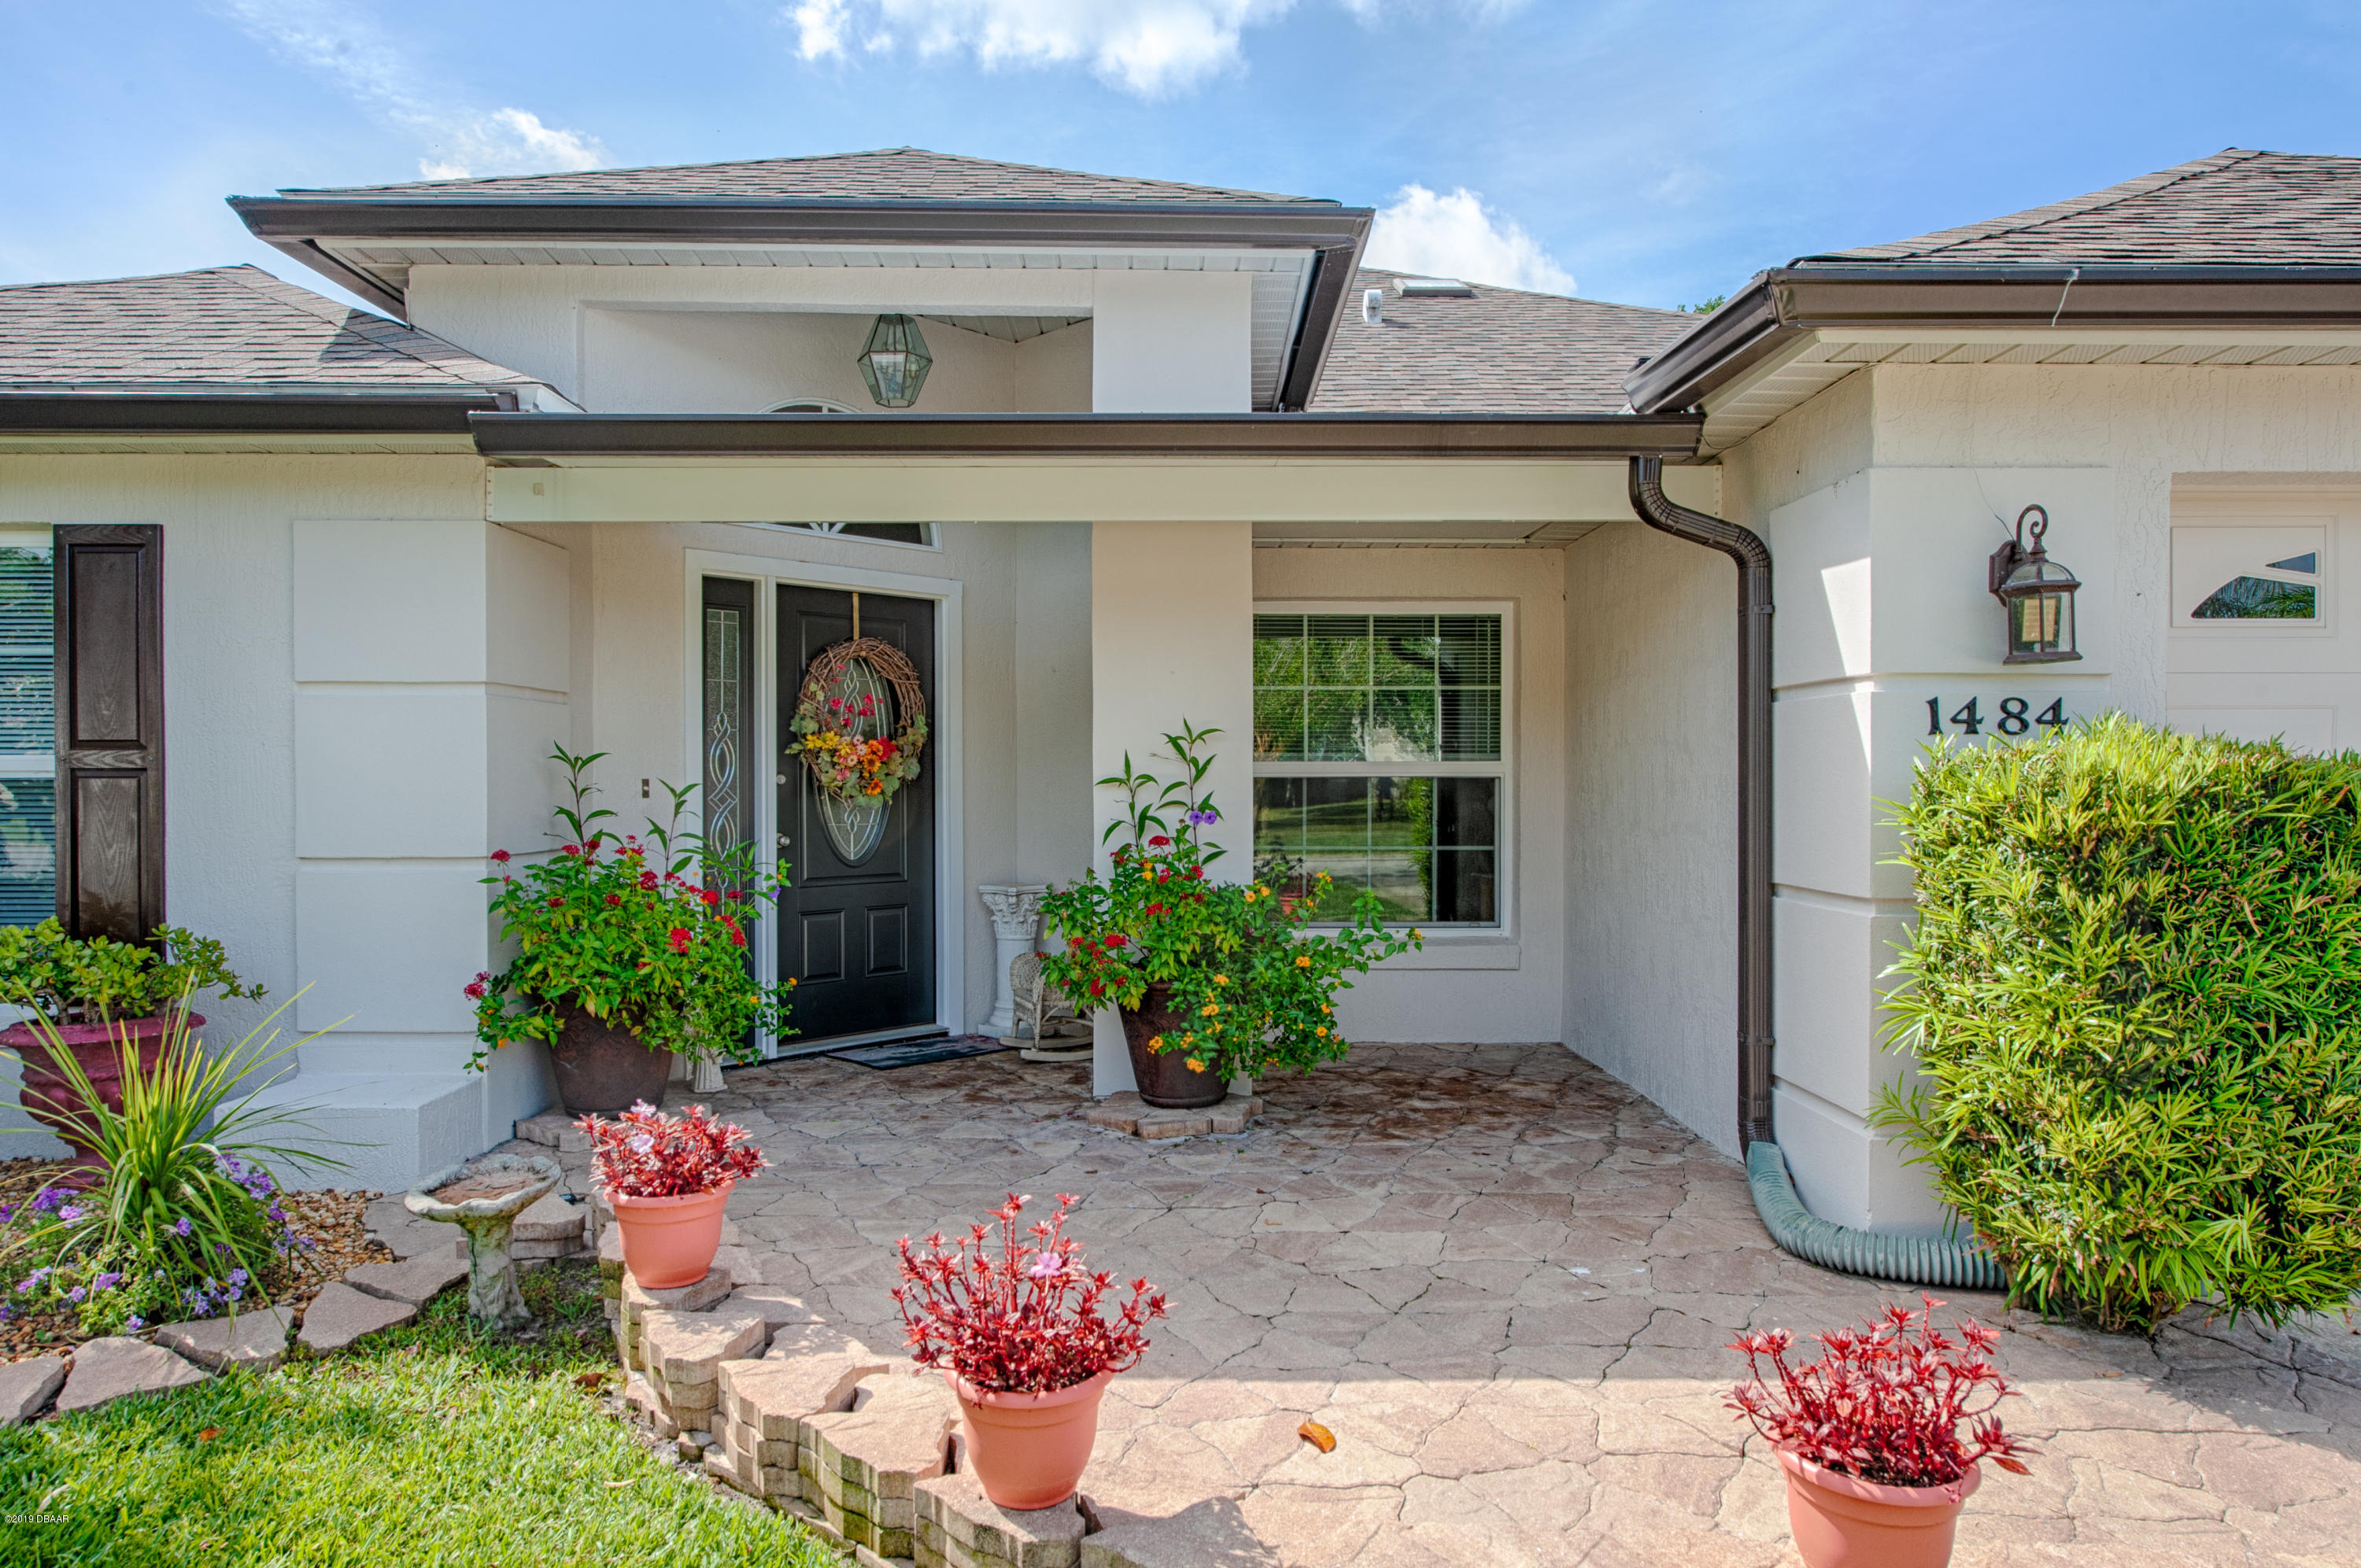 Photo of 1484 Nappa Drive, Port Orange, FL 32128